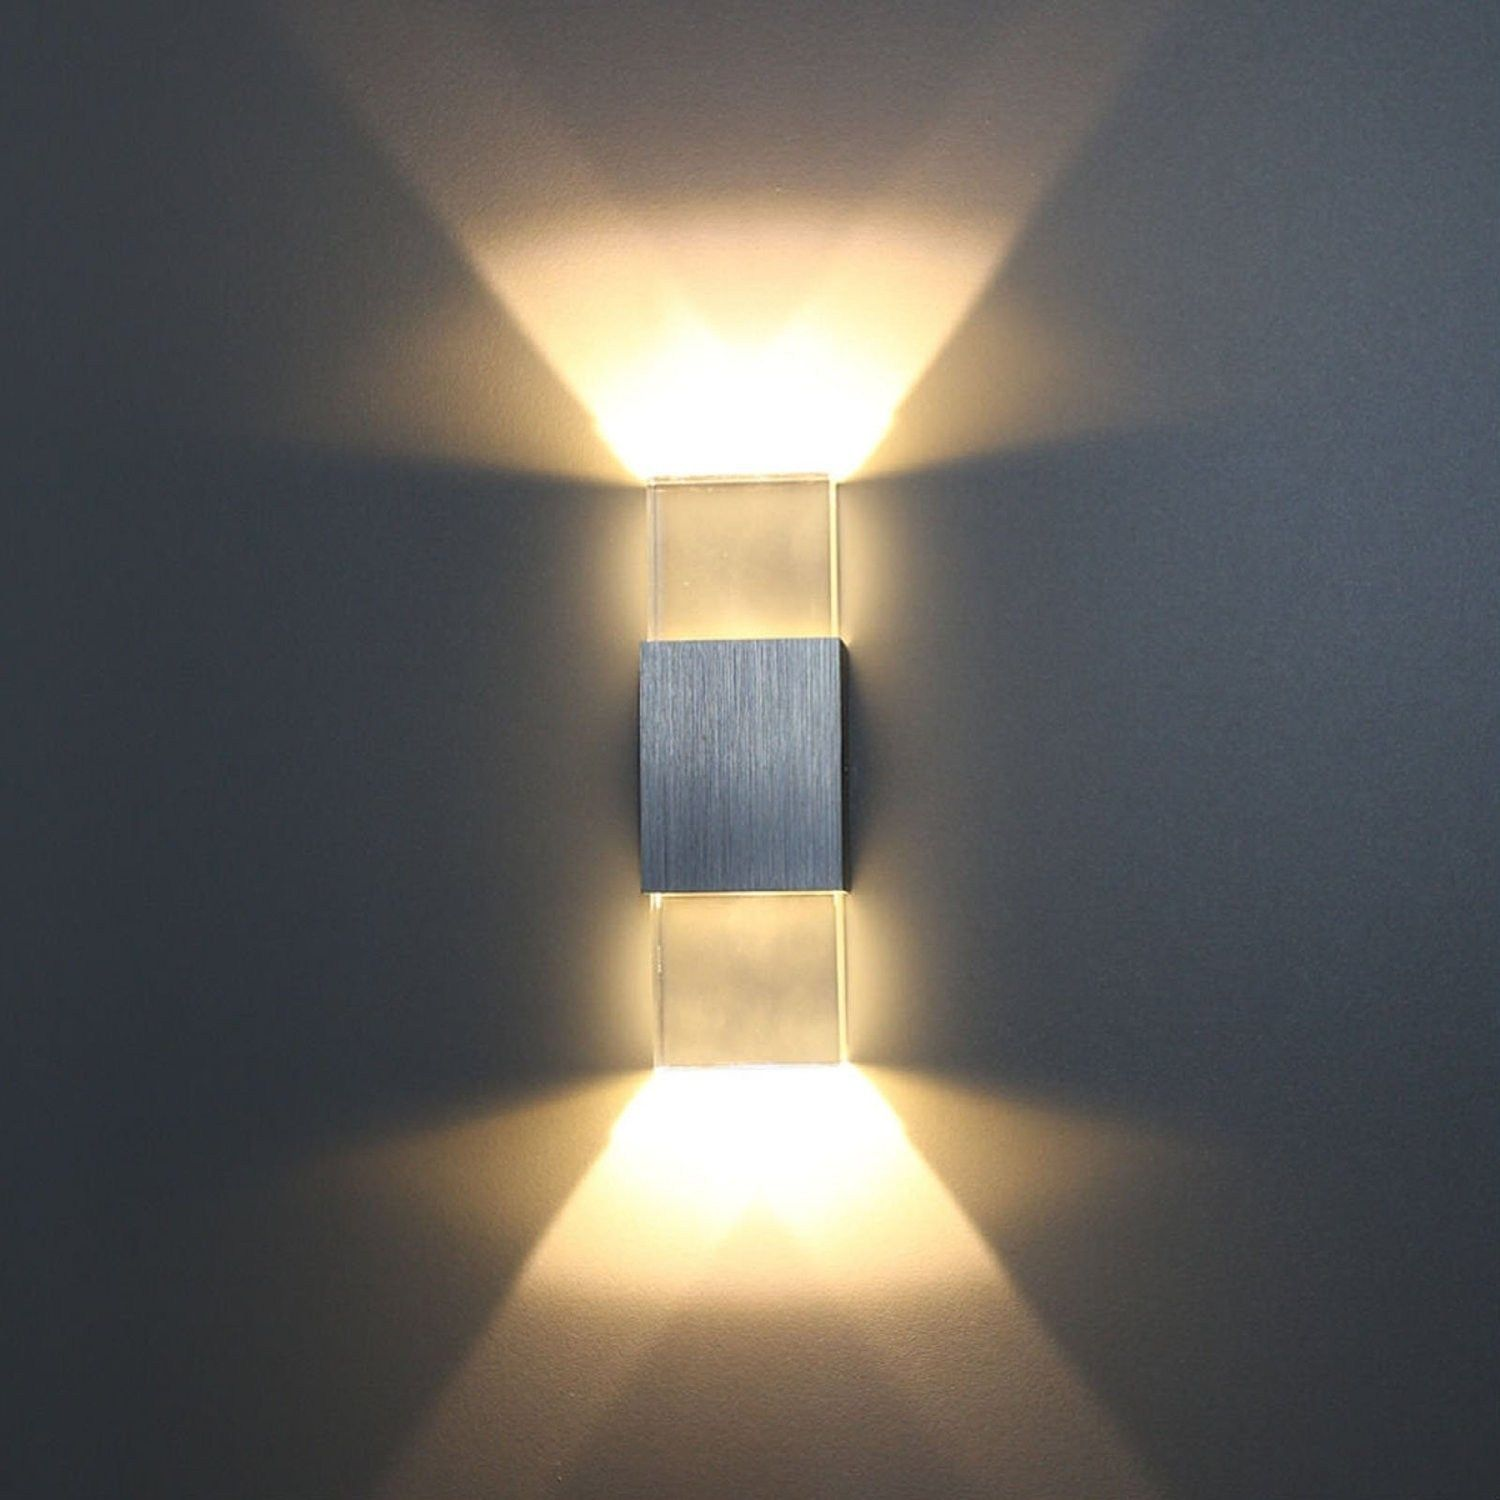 Contemporary Wall Sconce Lighting Architectural Wall Sconce Light Fixture Contemporary Wall Lighting Long Cy Wall Lights Glass Wall Lights Wall Sconce Lighting